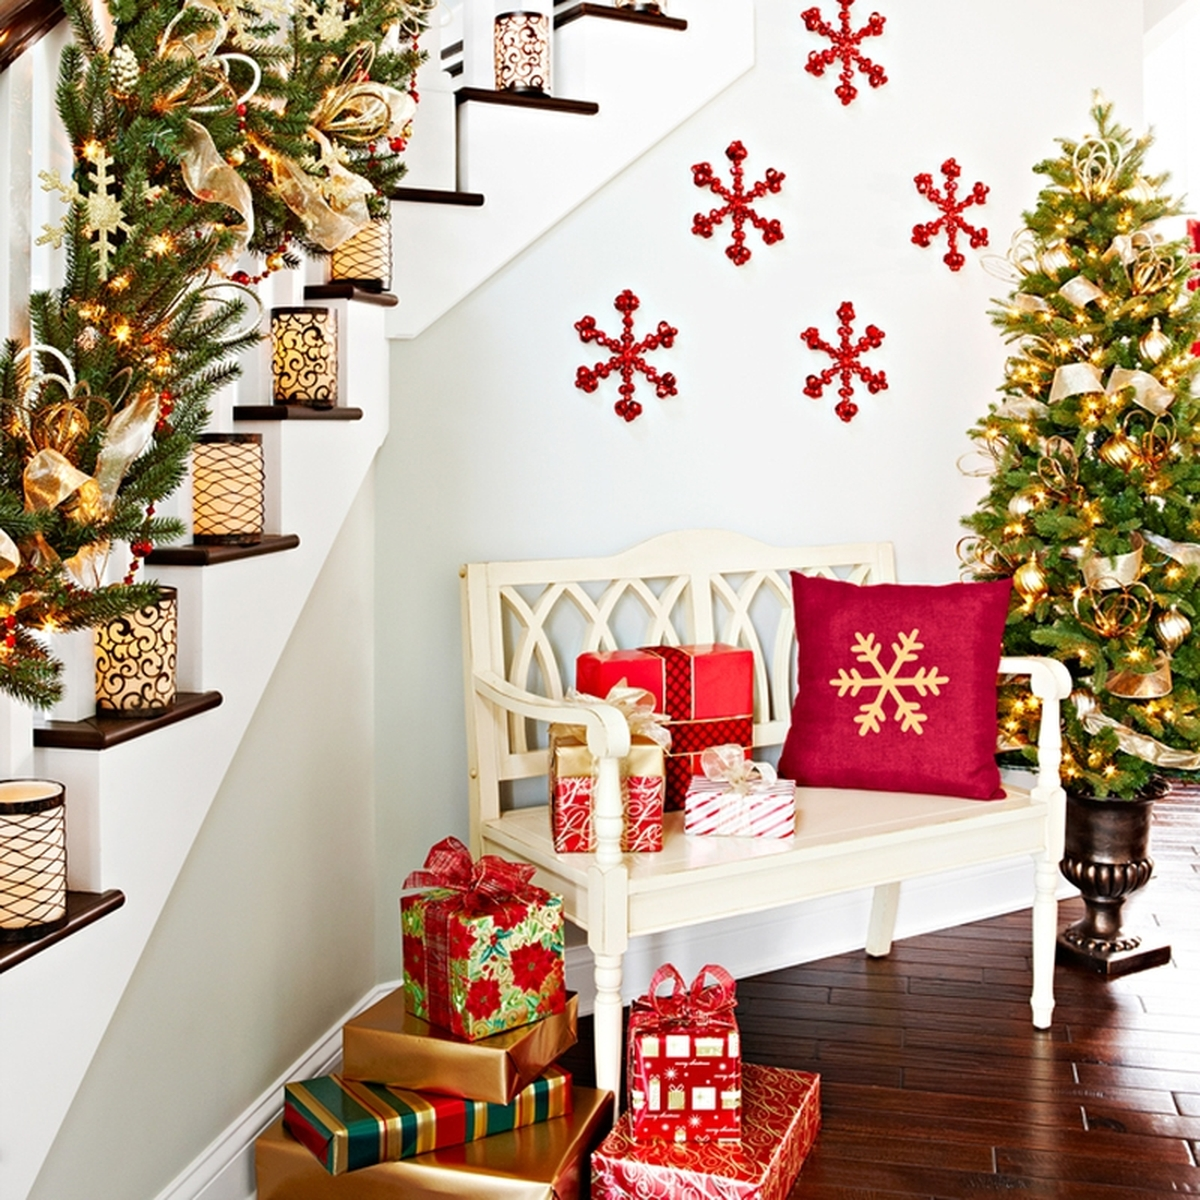 Decorating Your House For Christmas: 50 Best Indoor Decoration Ideas For Christmas In 2019